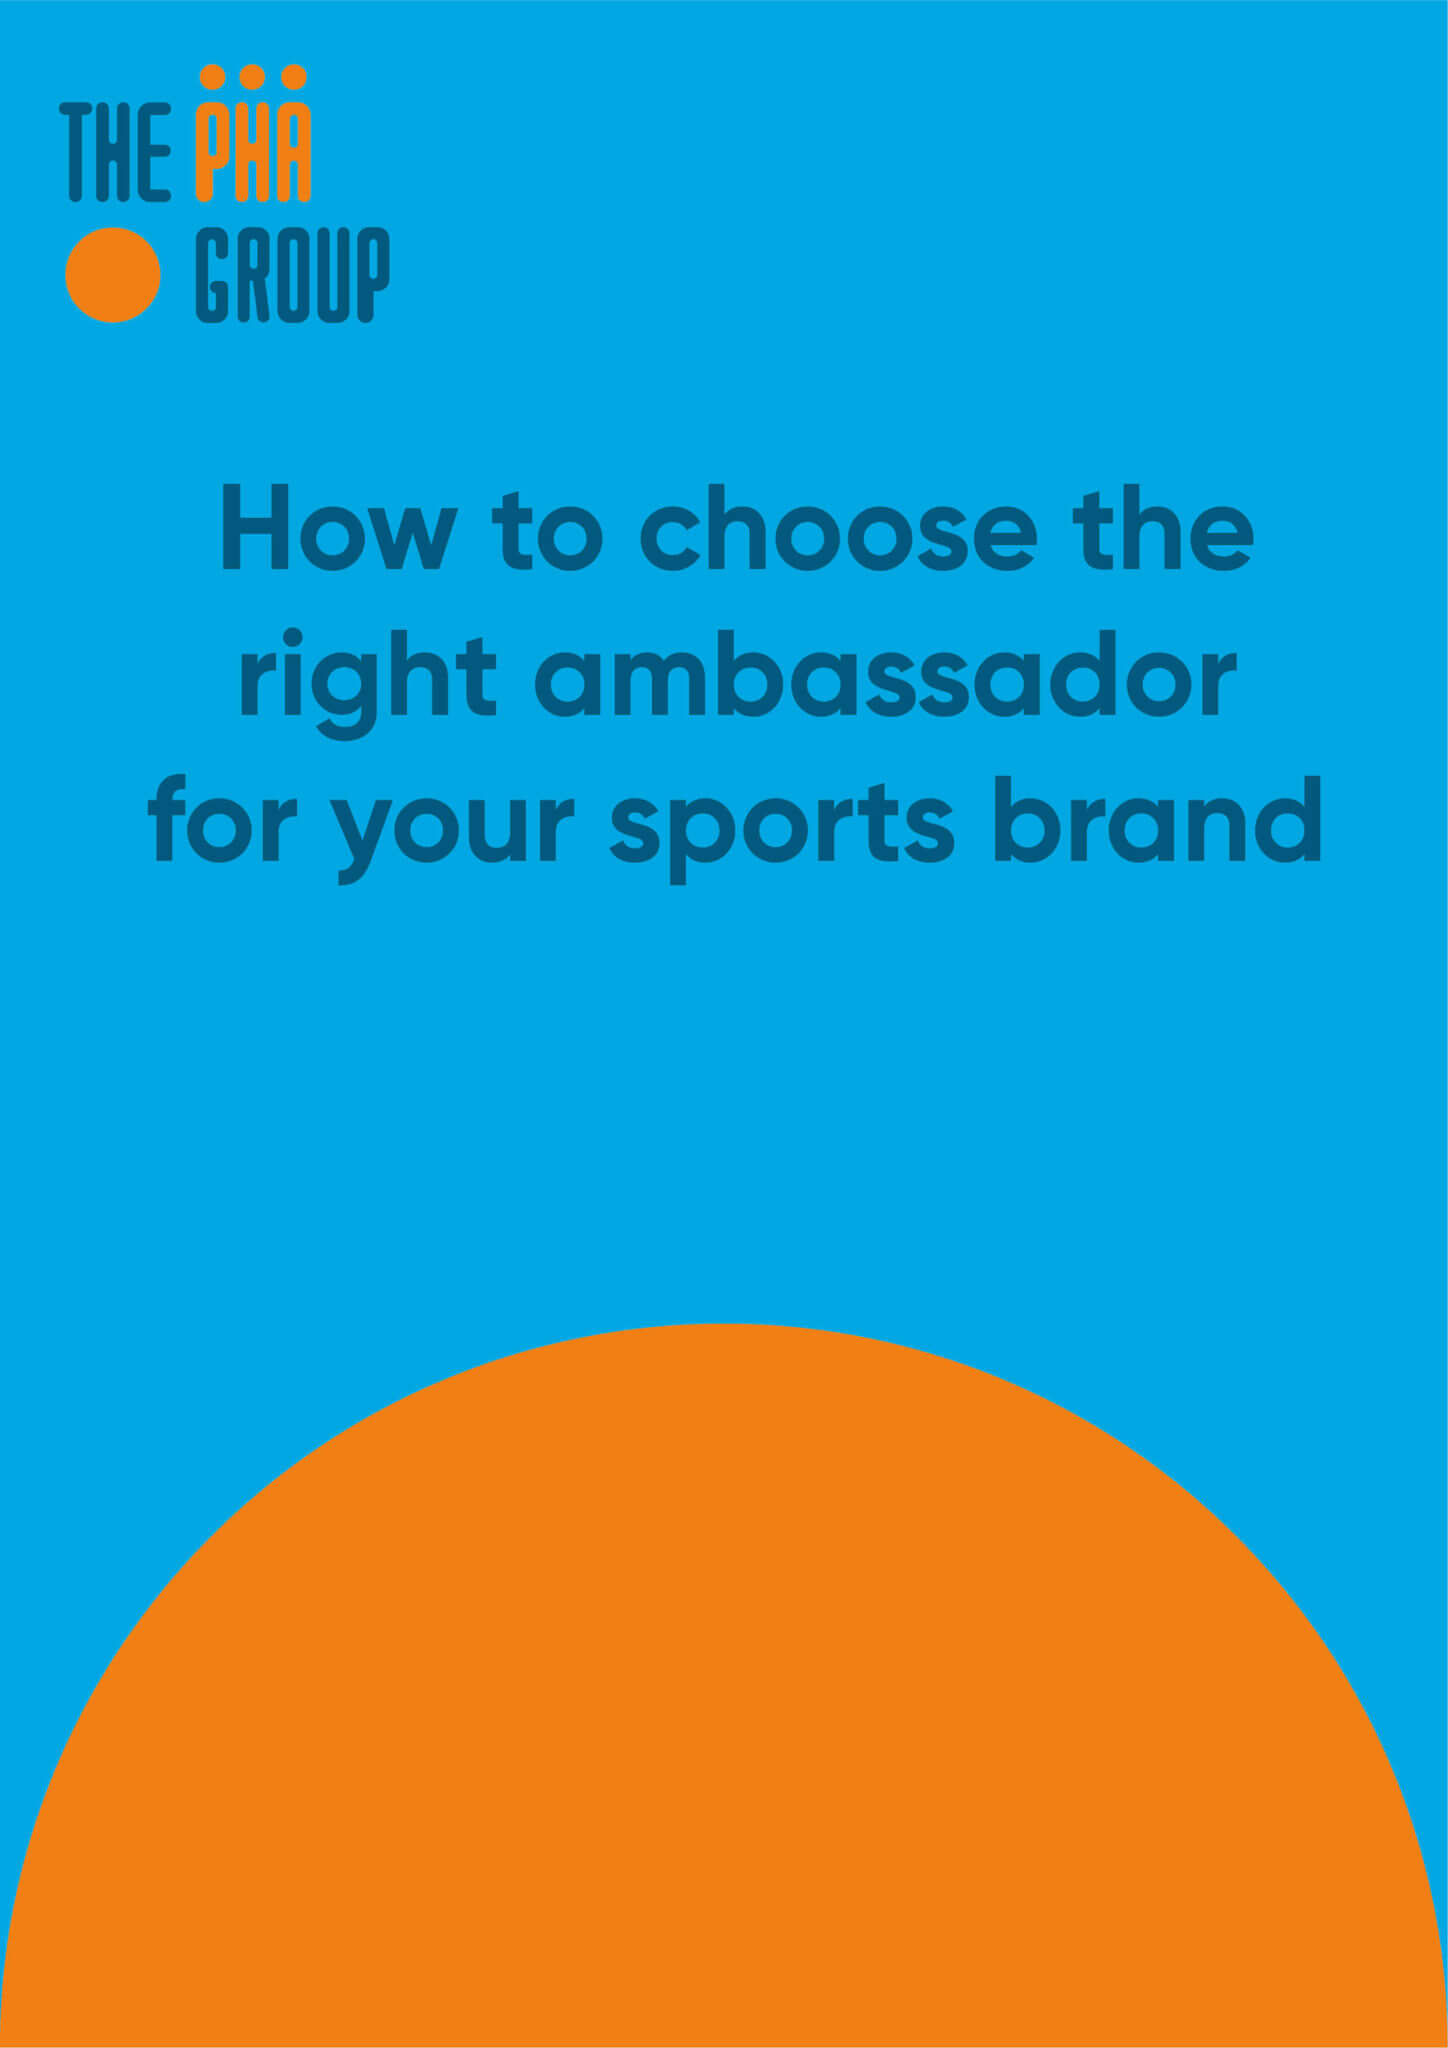 How to choose the right ambassador for your sports brand